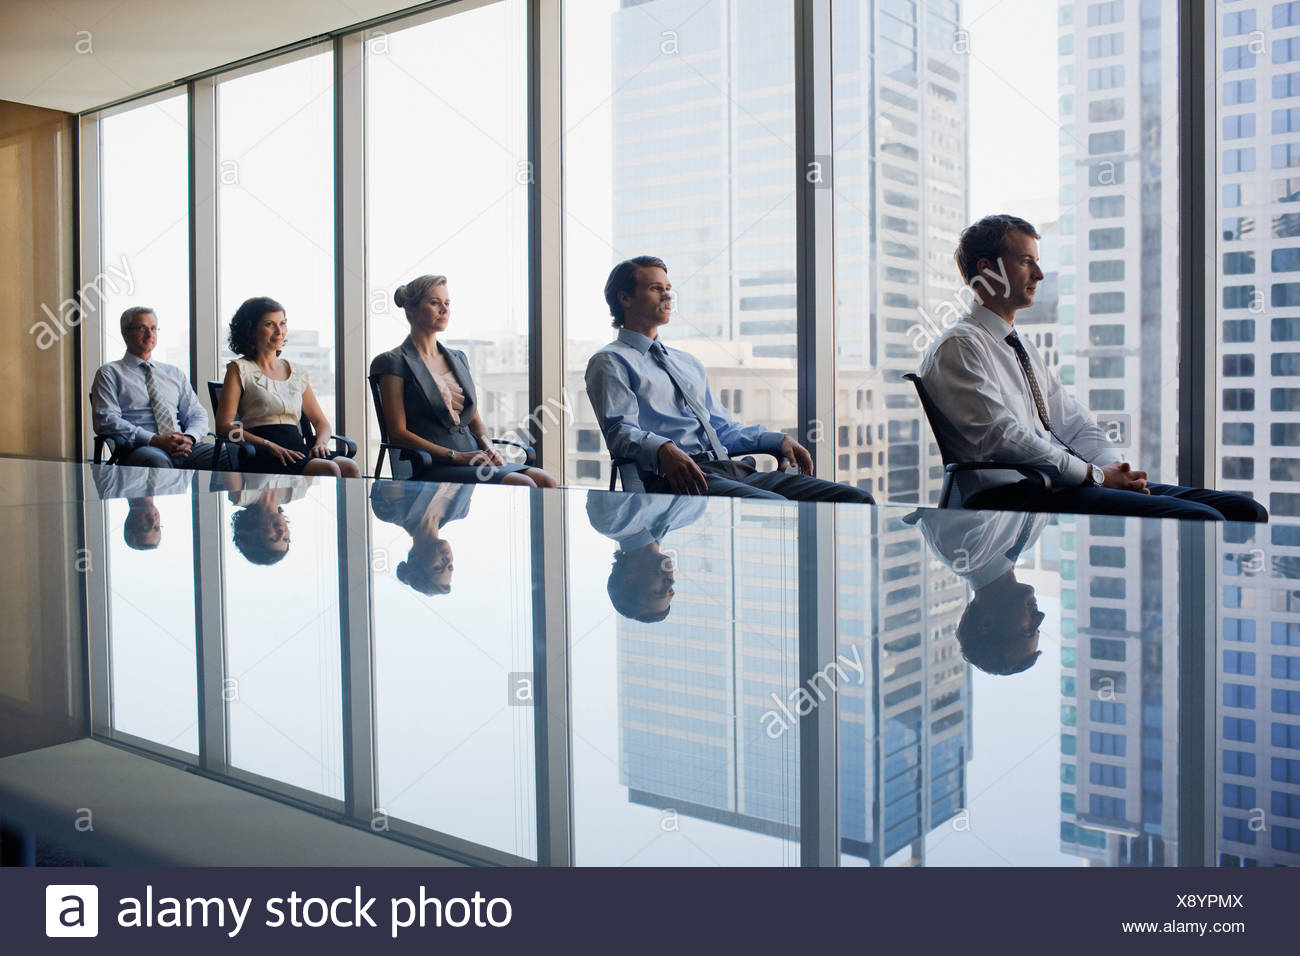 Business people sitting in row together in conference room - Stock Image